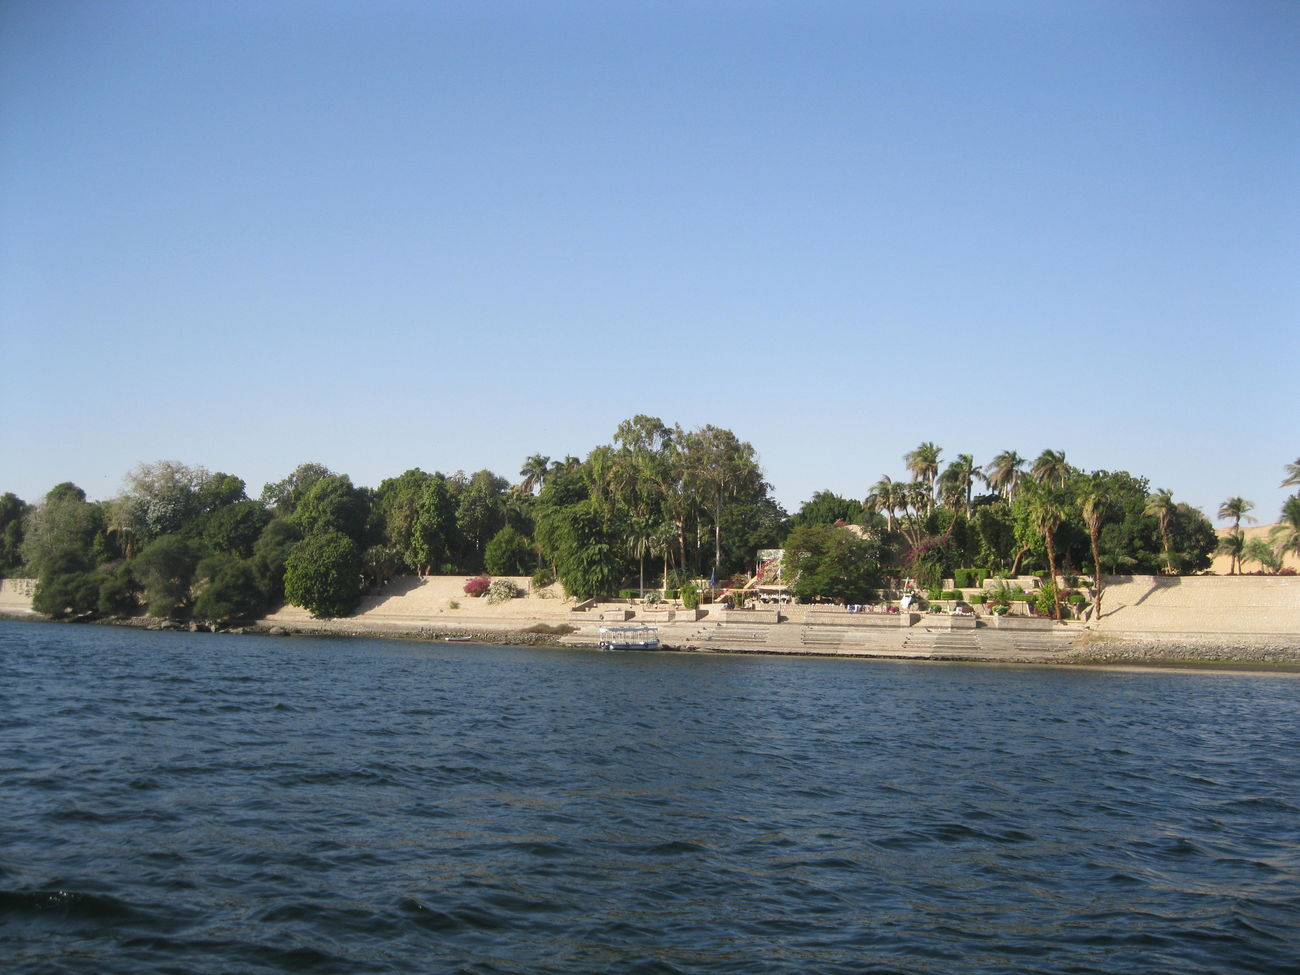 #Egypt #Nile #river Beauty In Nature Nature Water